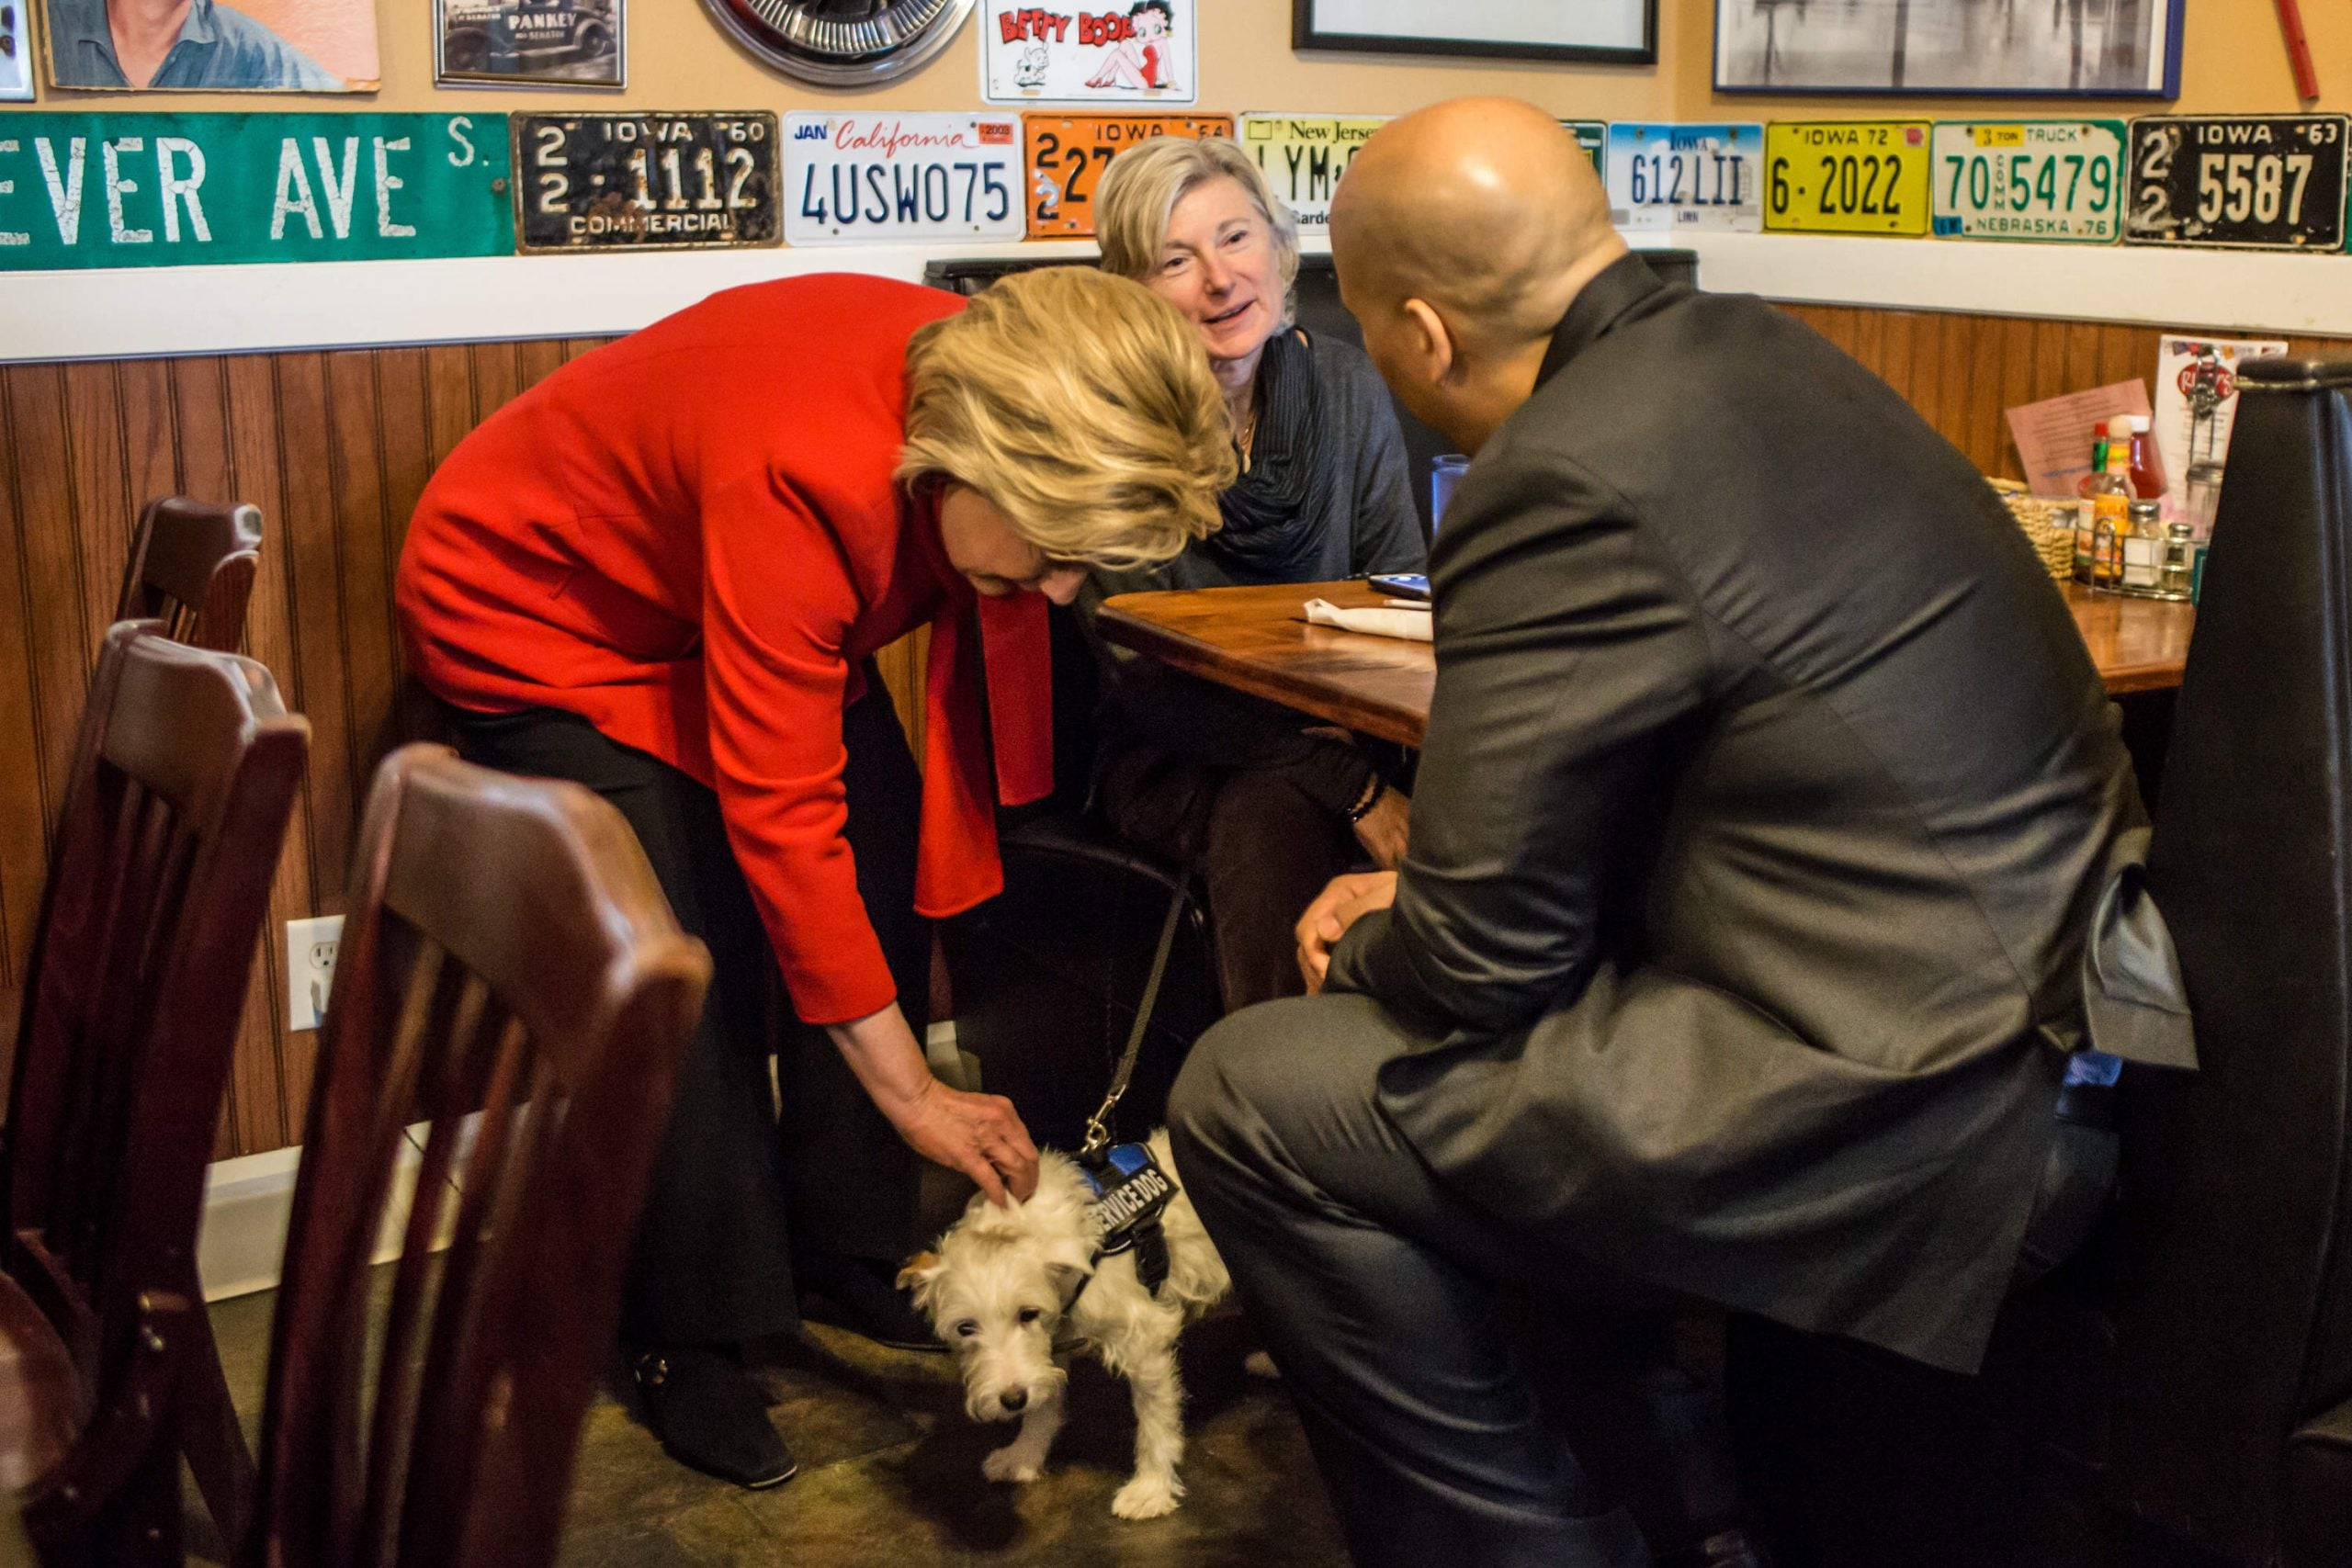 What does Hillary Clinton need most right now? To get a dog